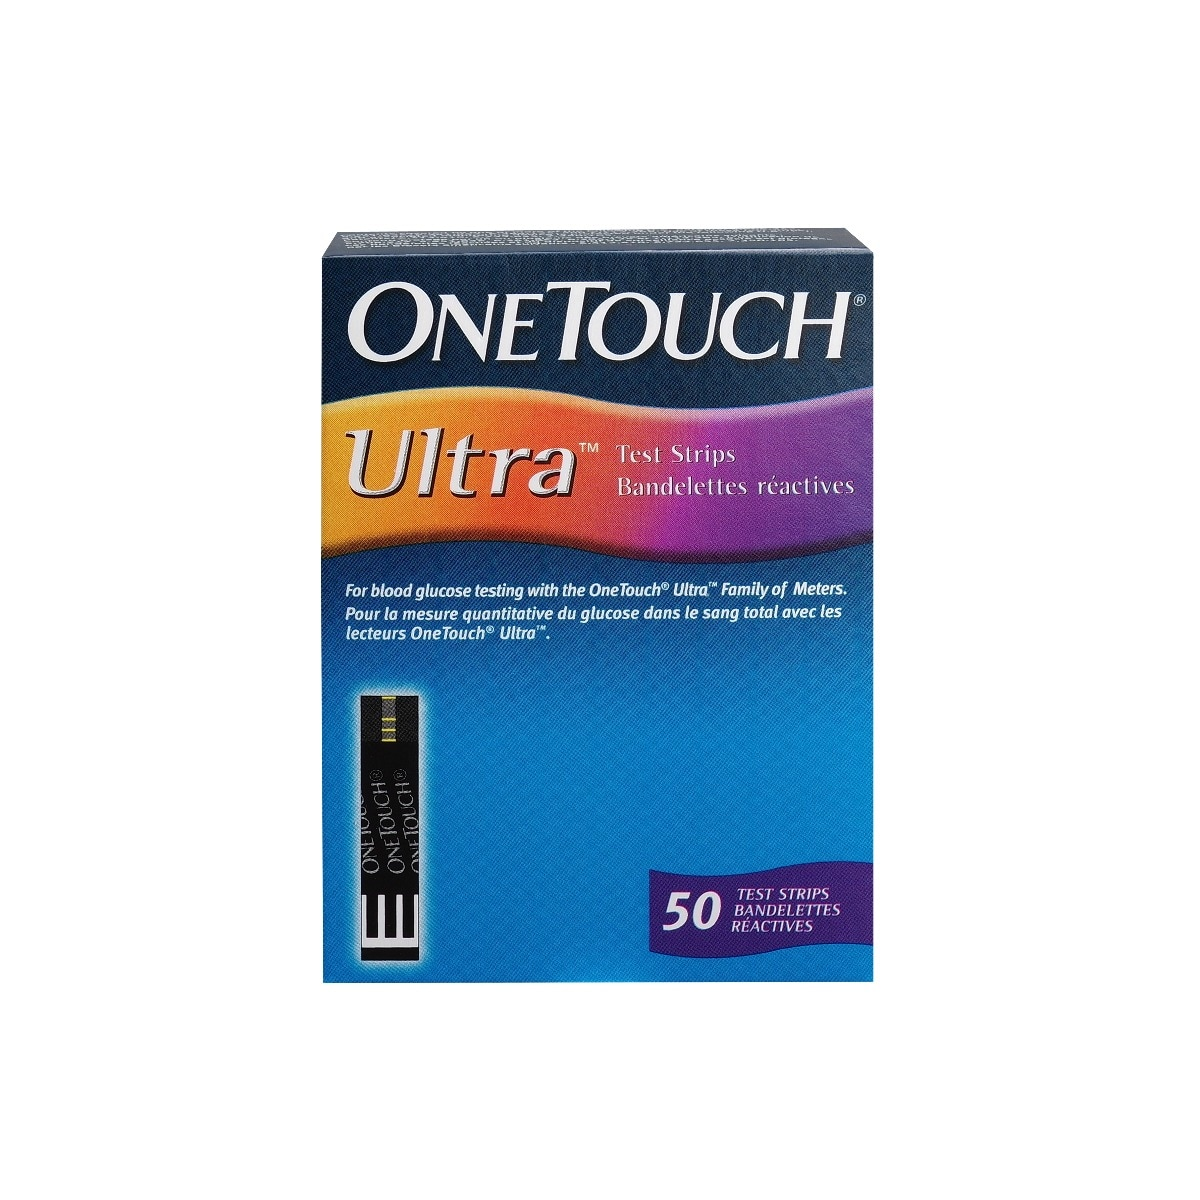 OneTouch Ultra Test Strips, 50 Count, Pack of 1